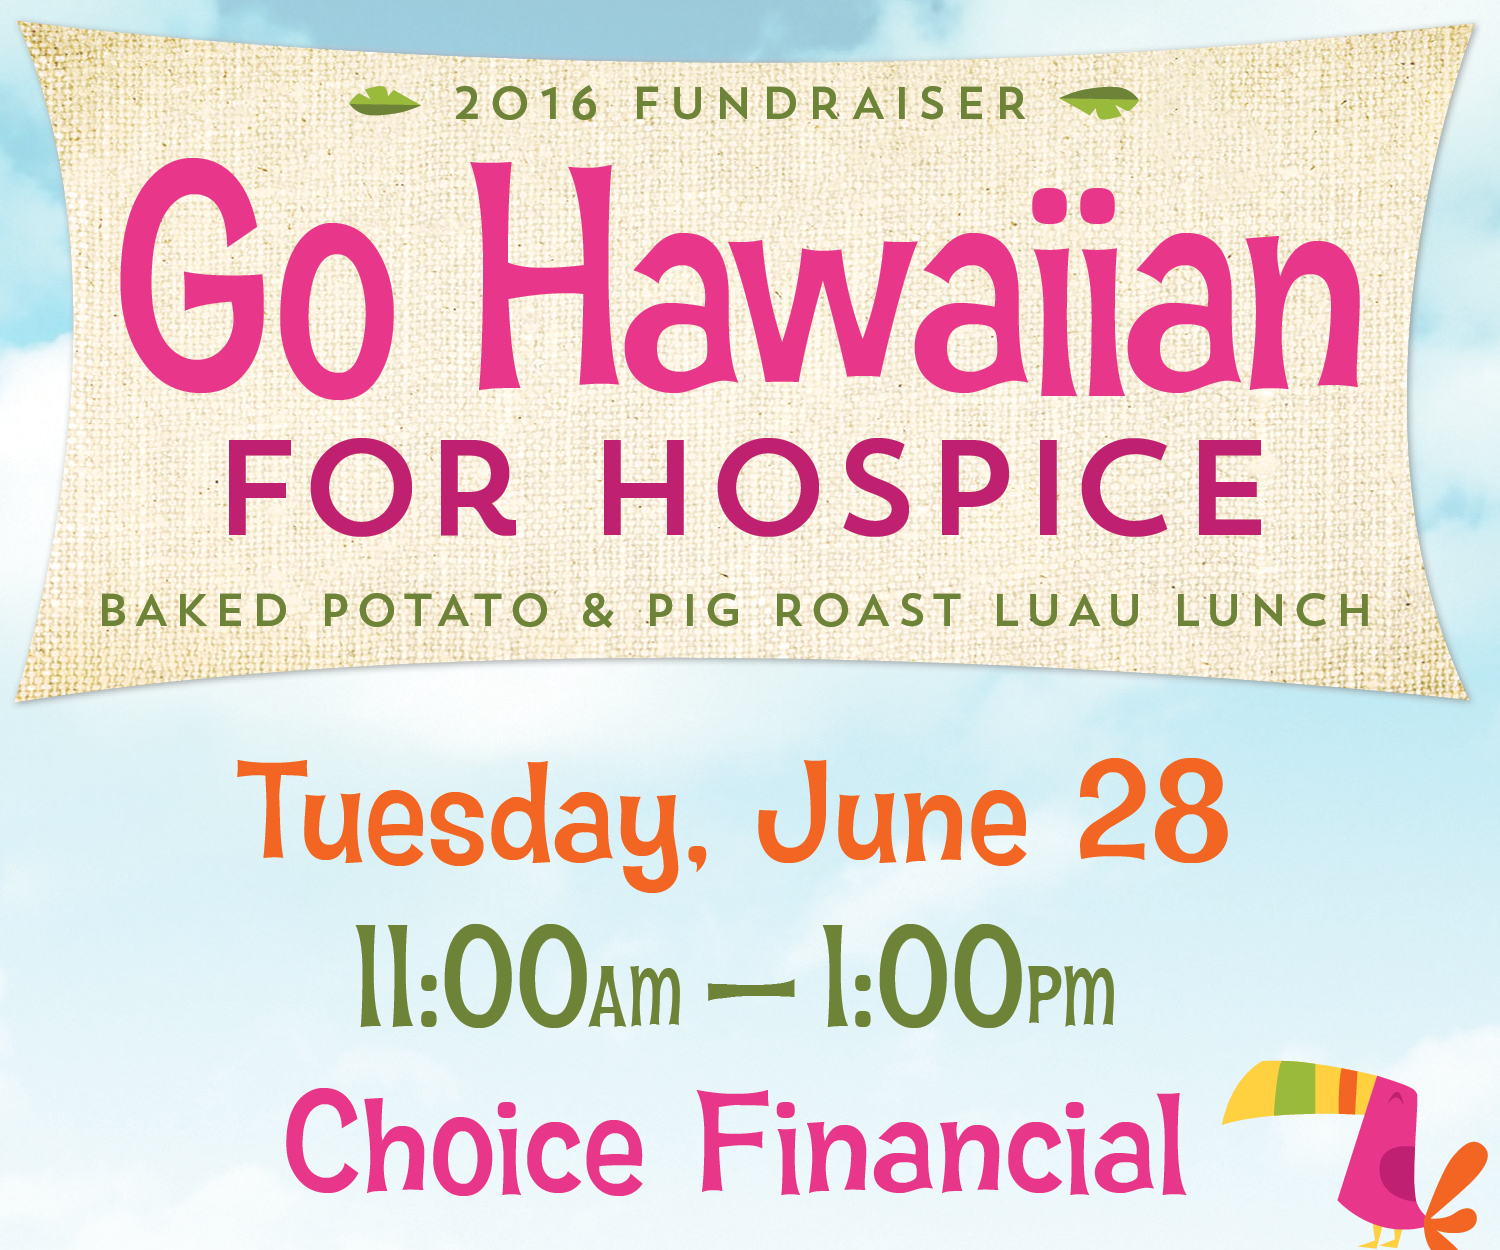 Go Hawaiian for Hospice_2016